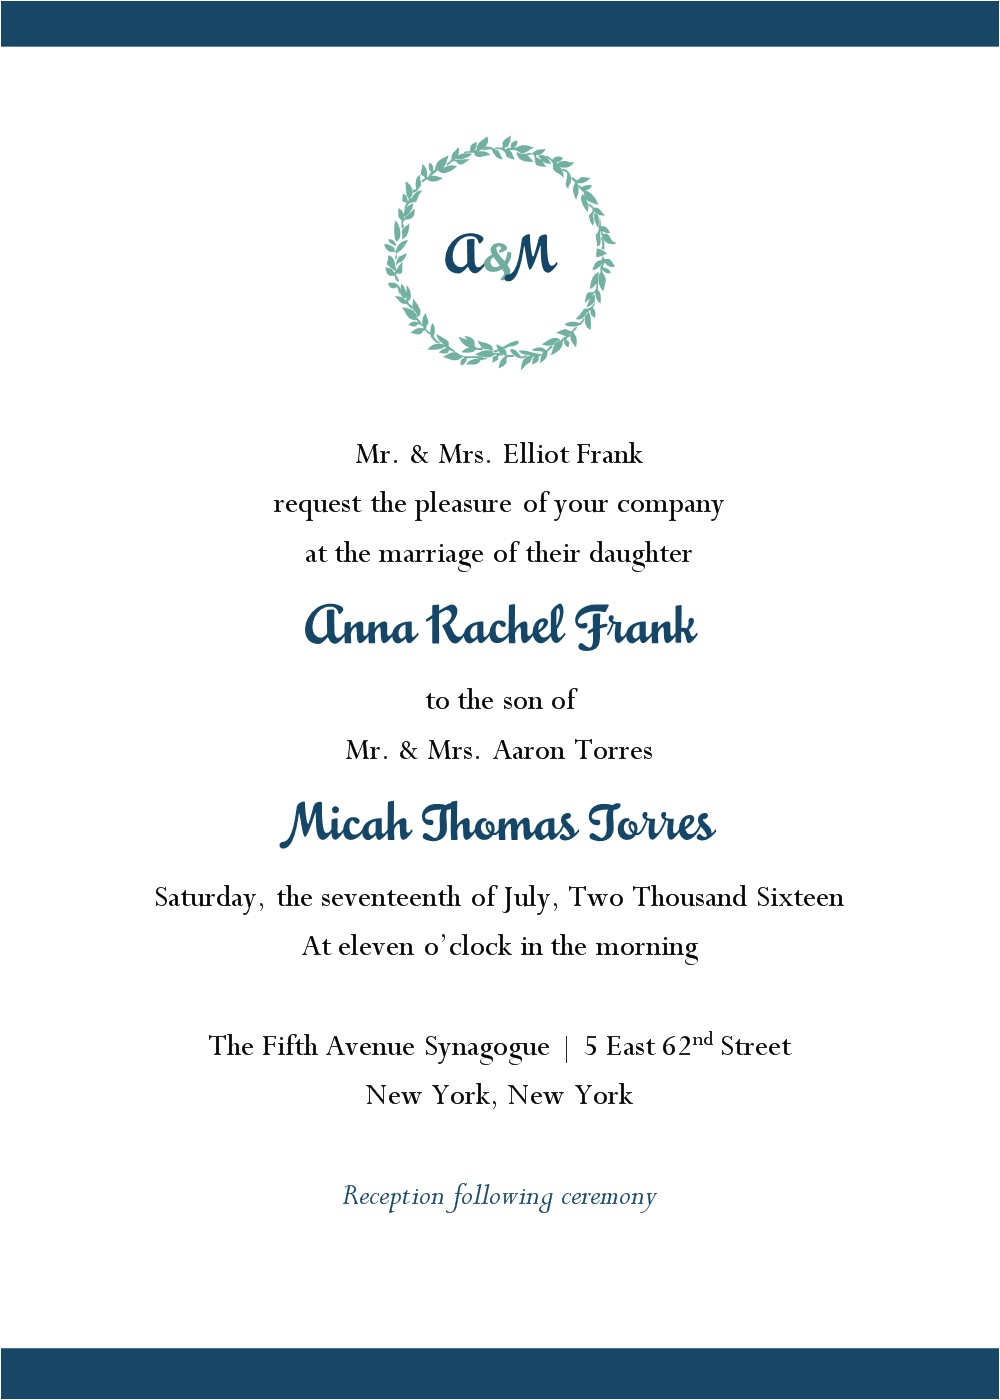 wedding invitations jewish wording samples